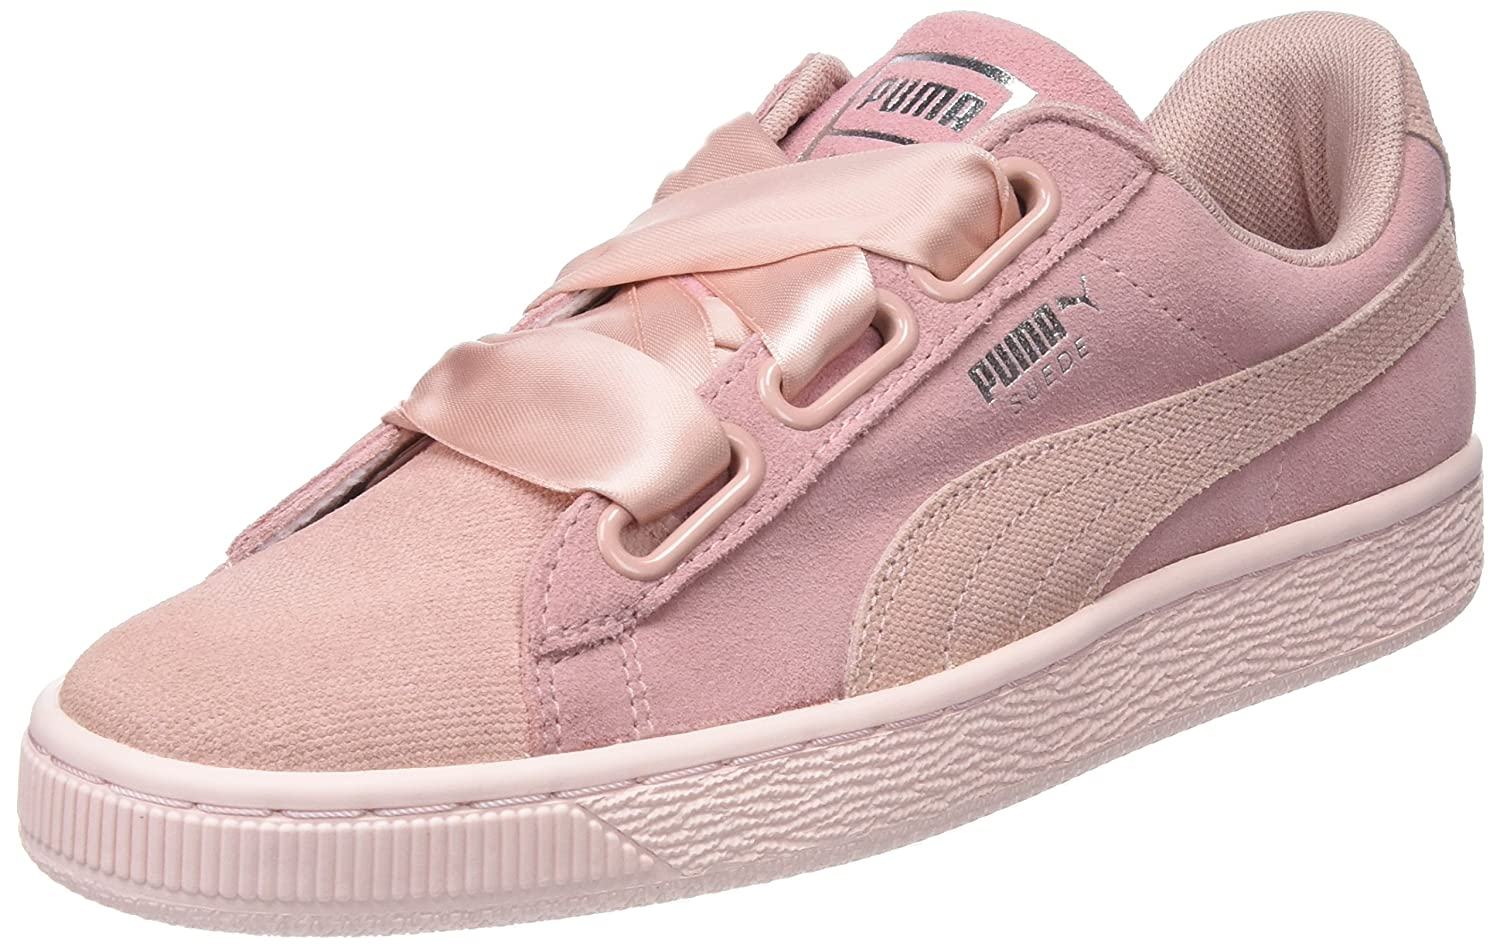 1484324f164c Puma Women s s Suede Heart Pebble WN s Trainers  Amazon.co.uk  Shoes   Bags